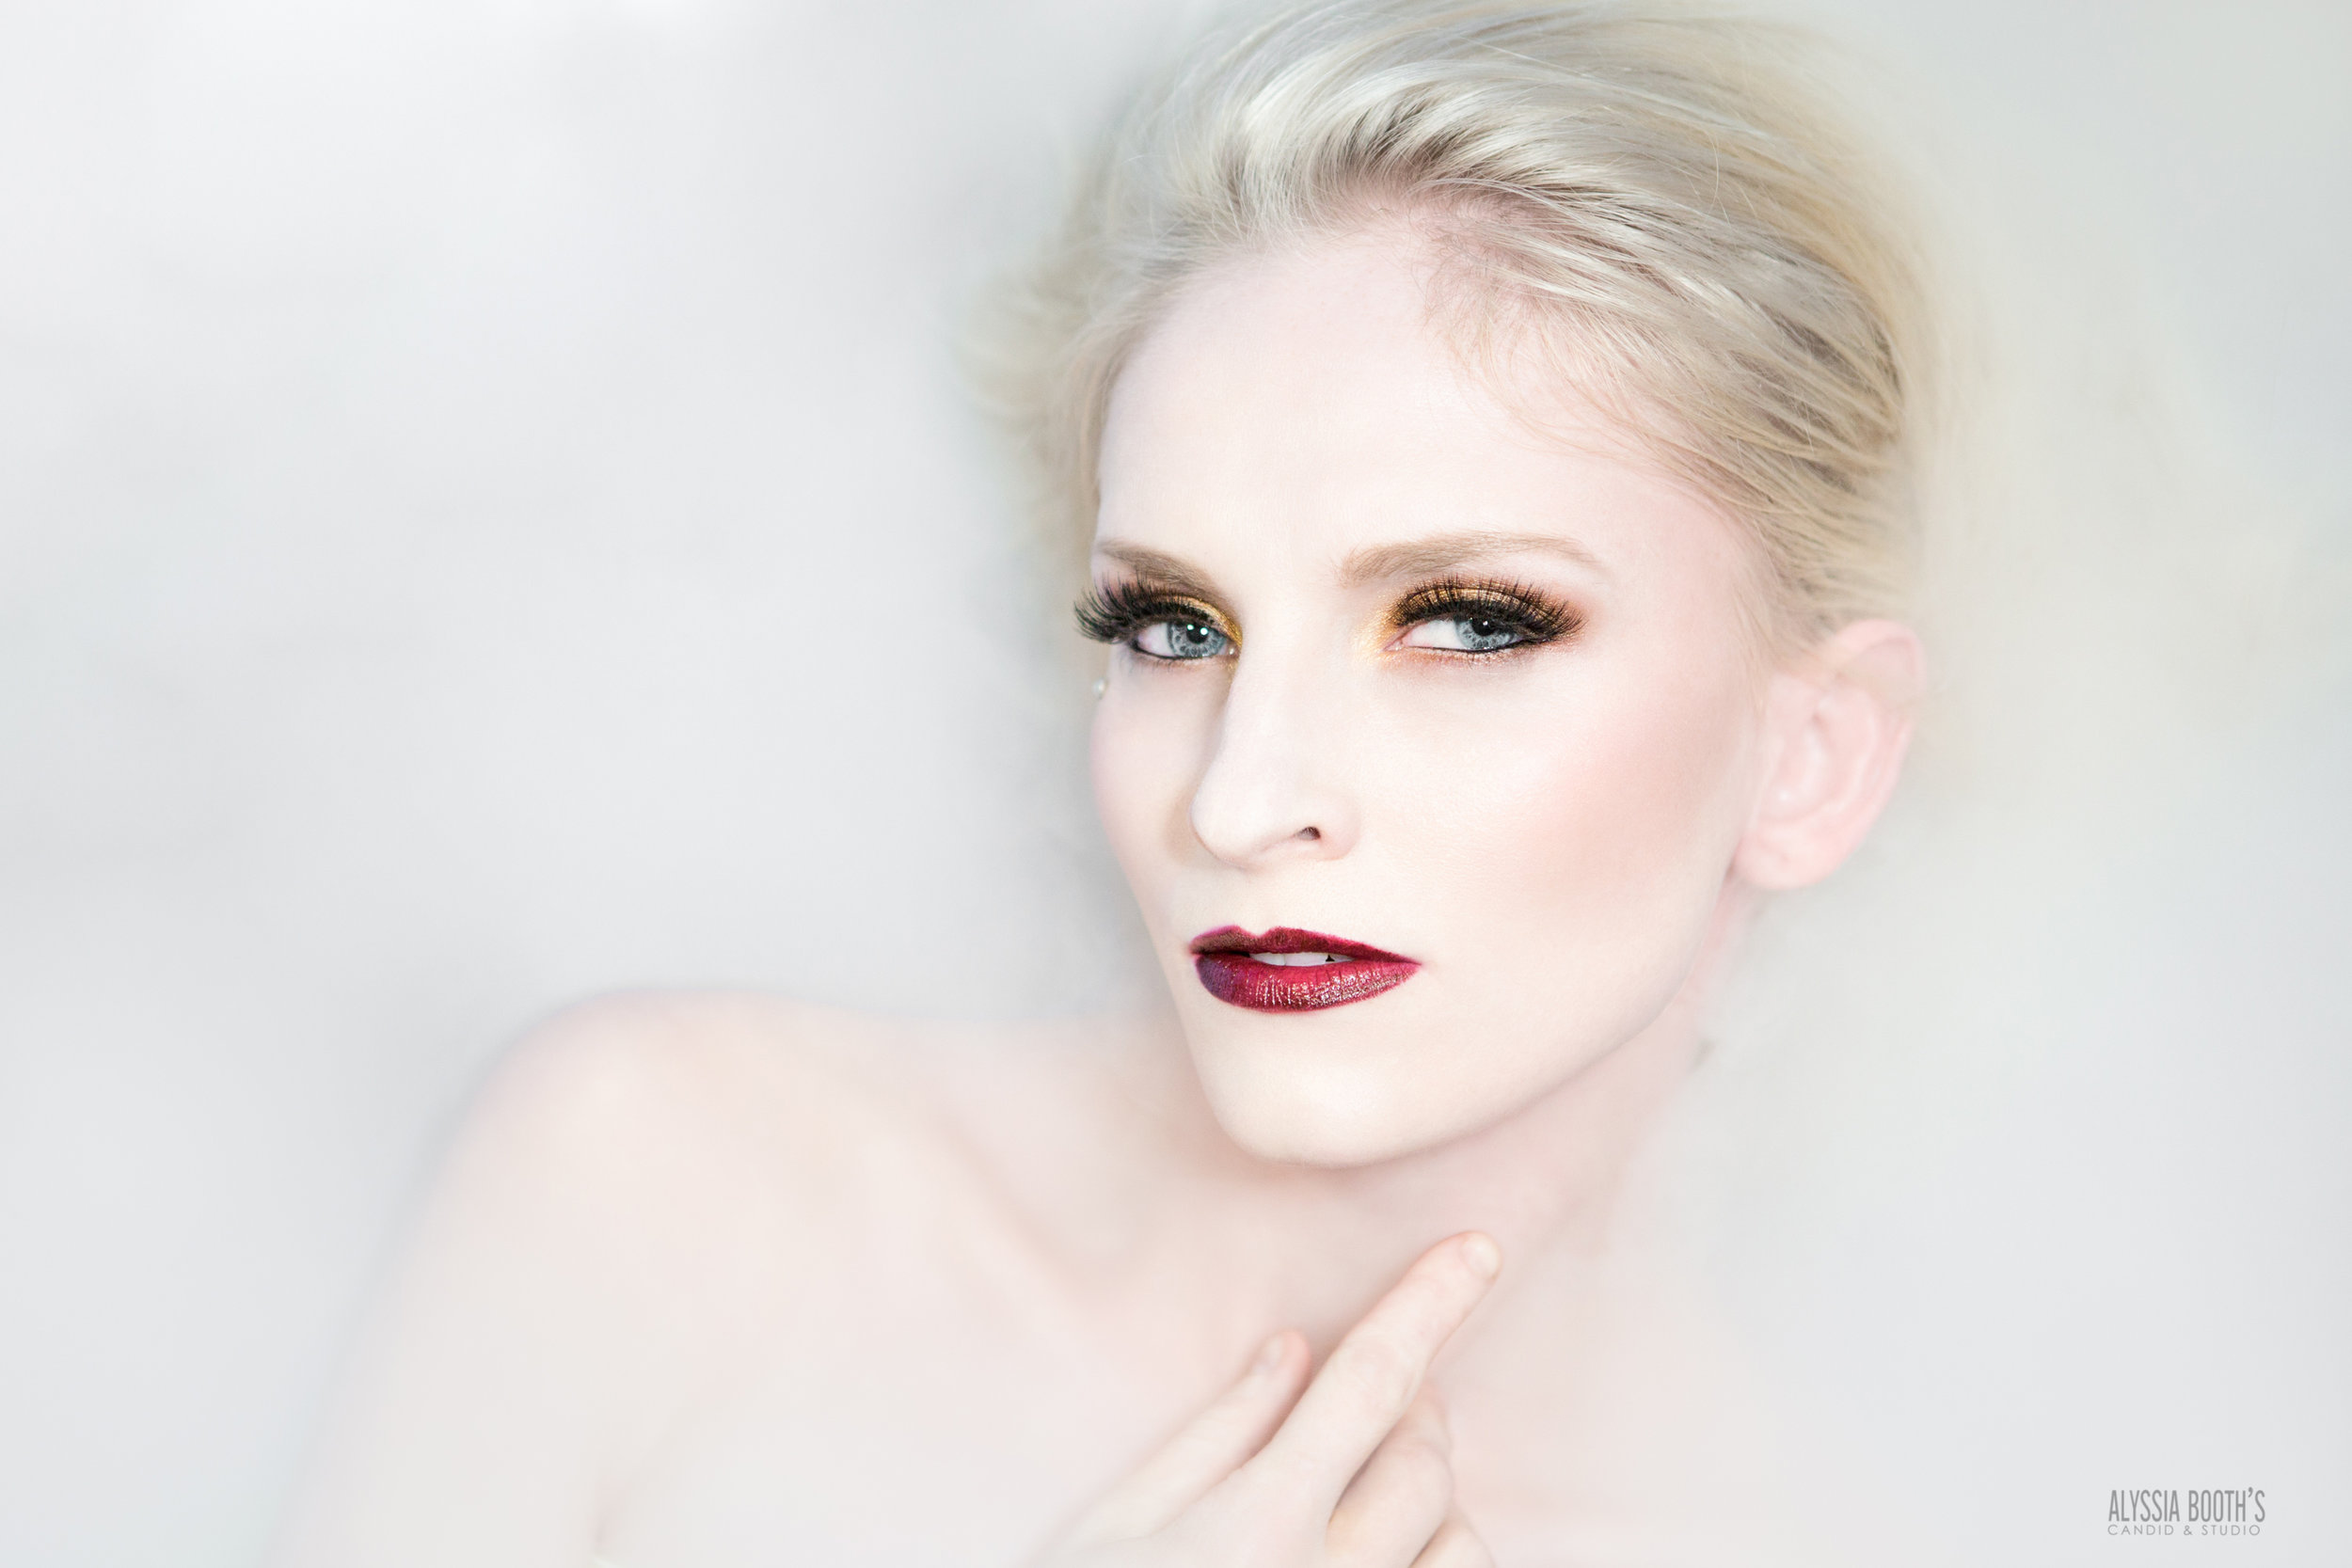 Dry Ice Photoshoot   Gold Makeup Test   Alyssia Booth's Candid & Studio   Michigan Photographer